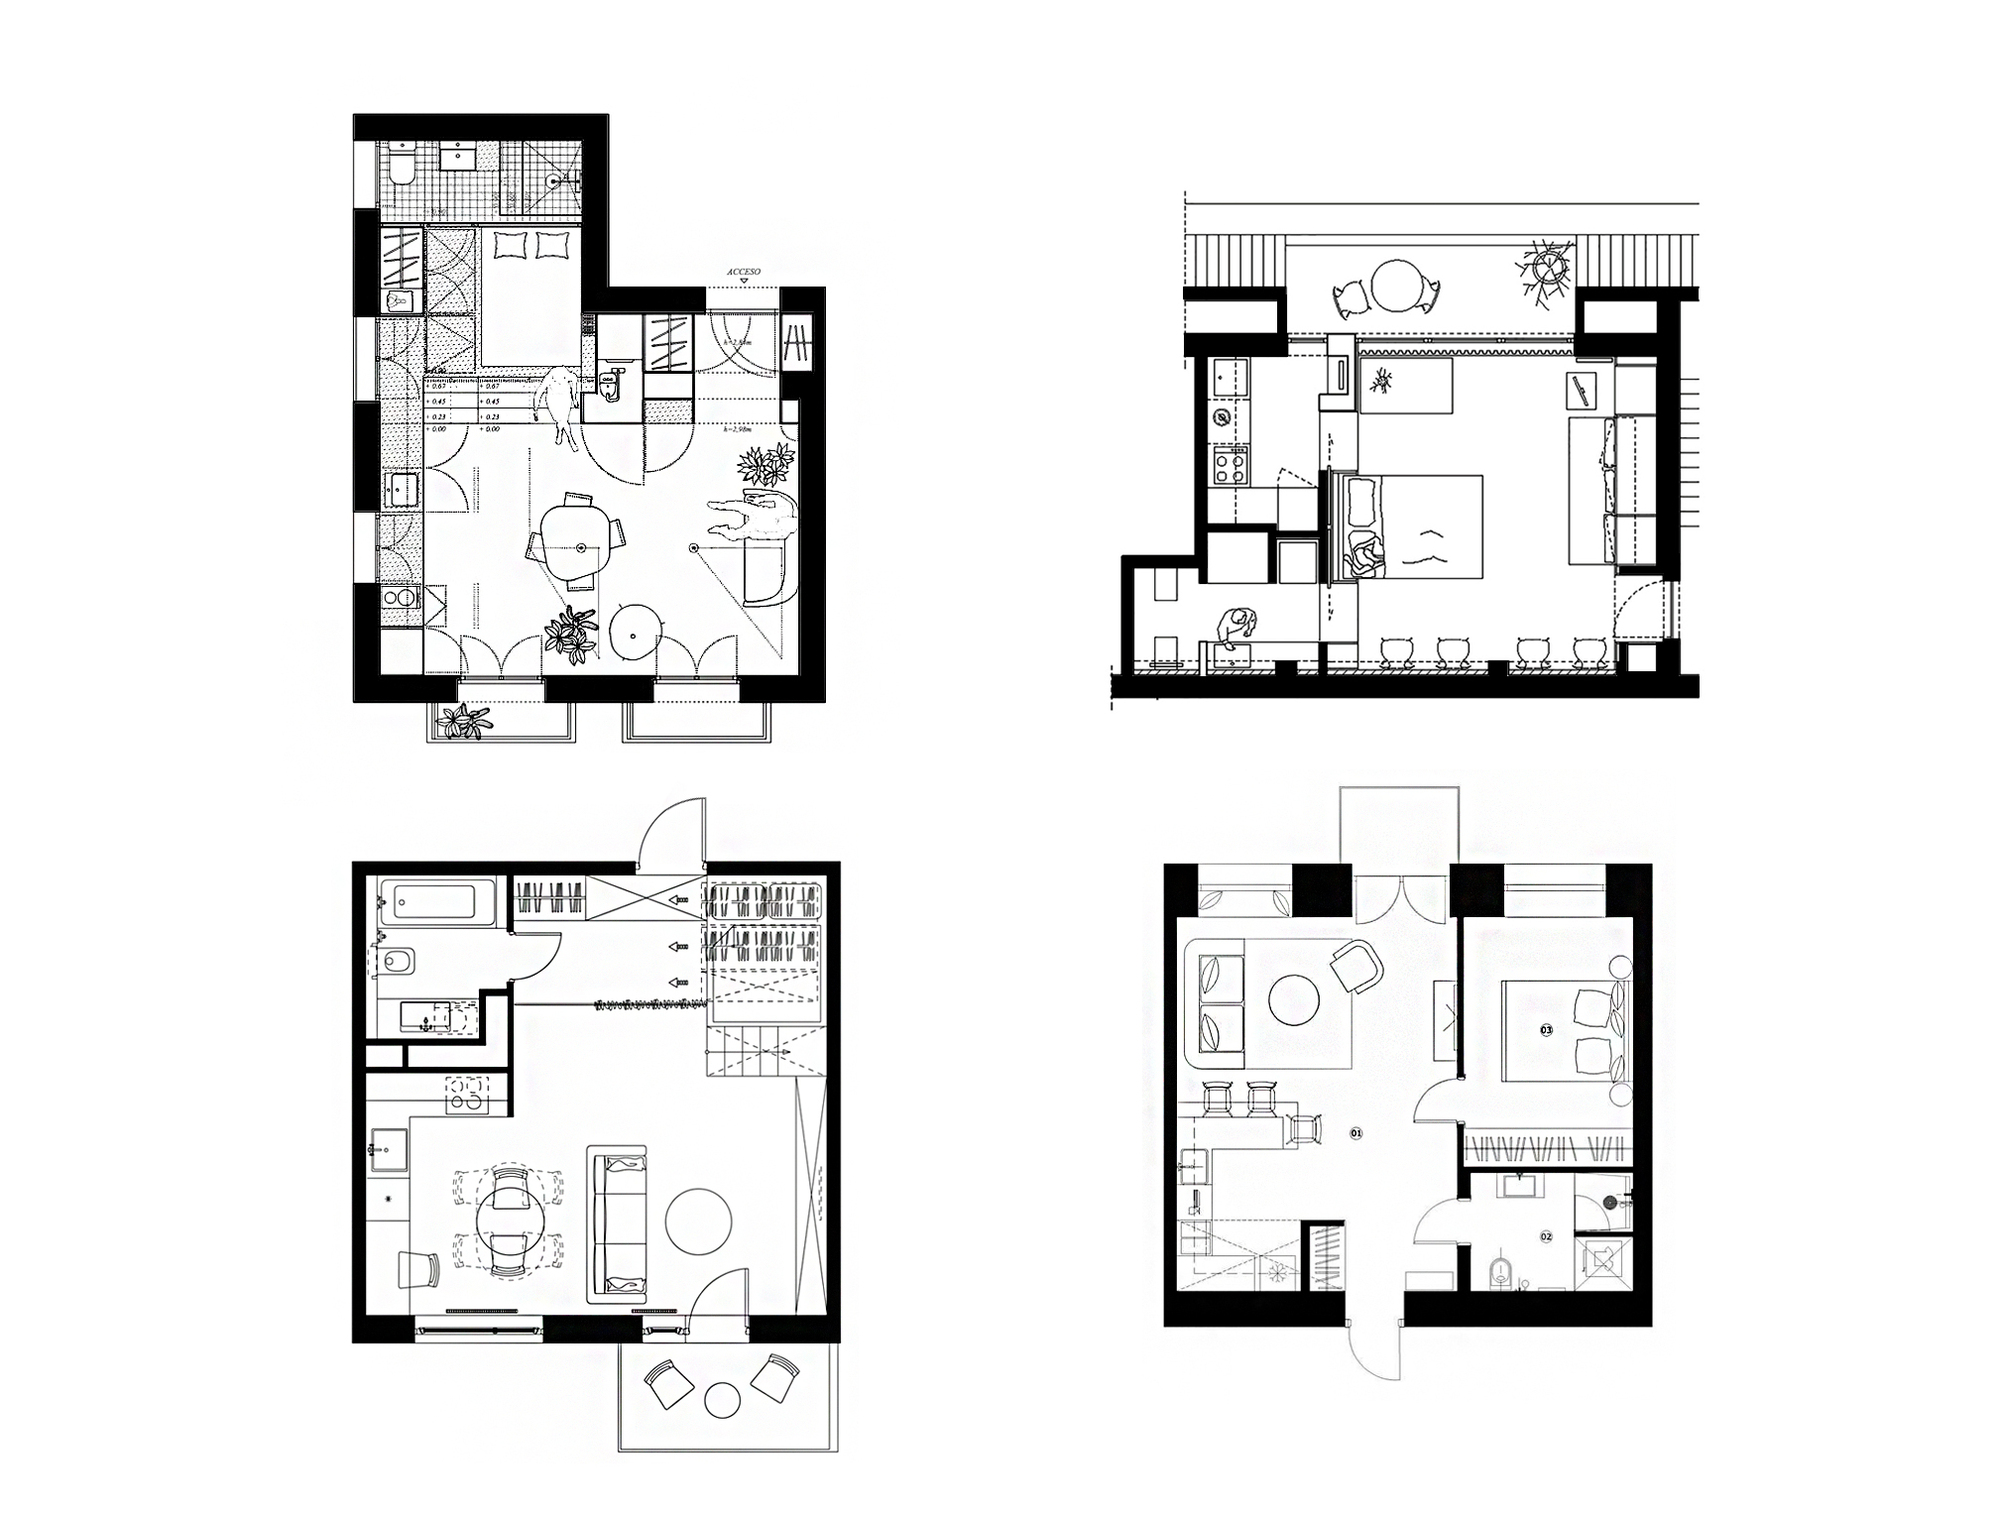 house plans under 50 square meters 26 more helpful examples of small scale living [ 2000 x 1514 Pixel ]